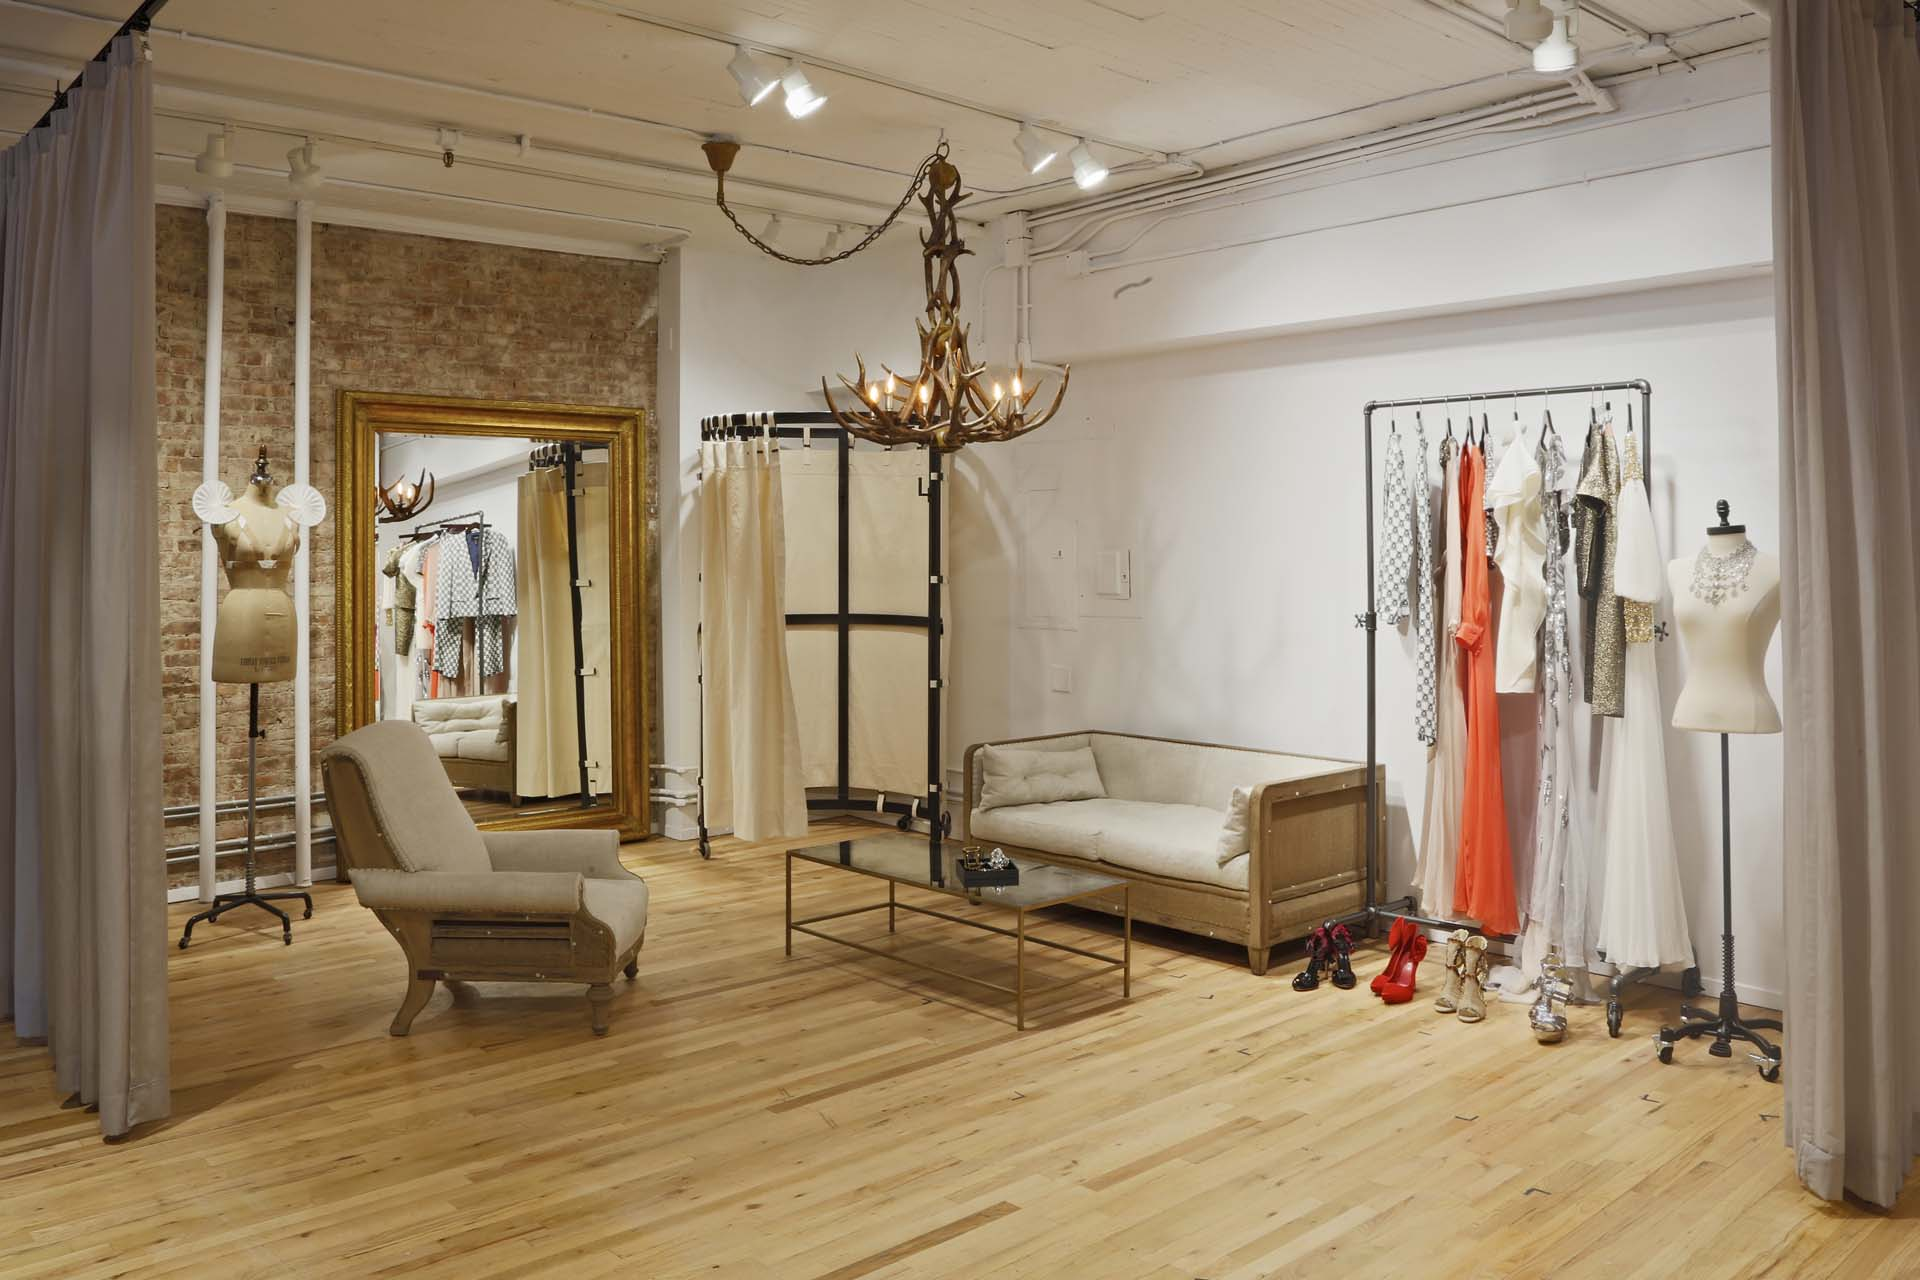 Mahna Clothes Retail Design Wood Interior Vintage Soho Pop